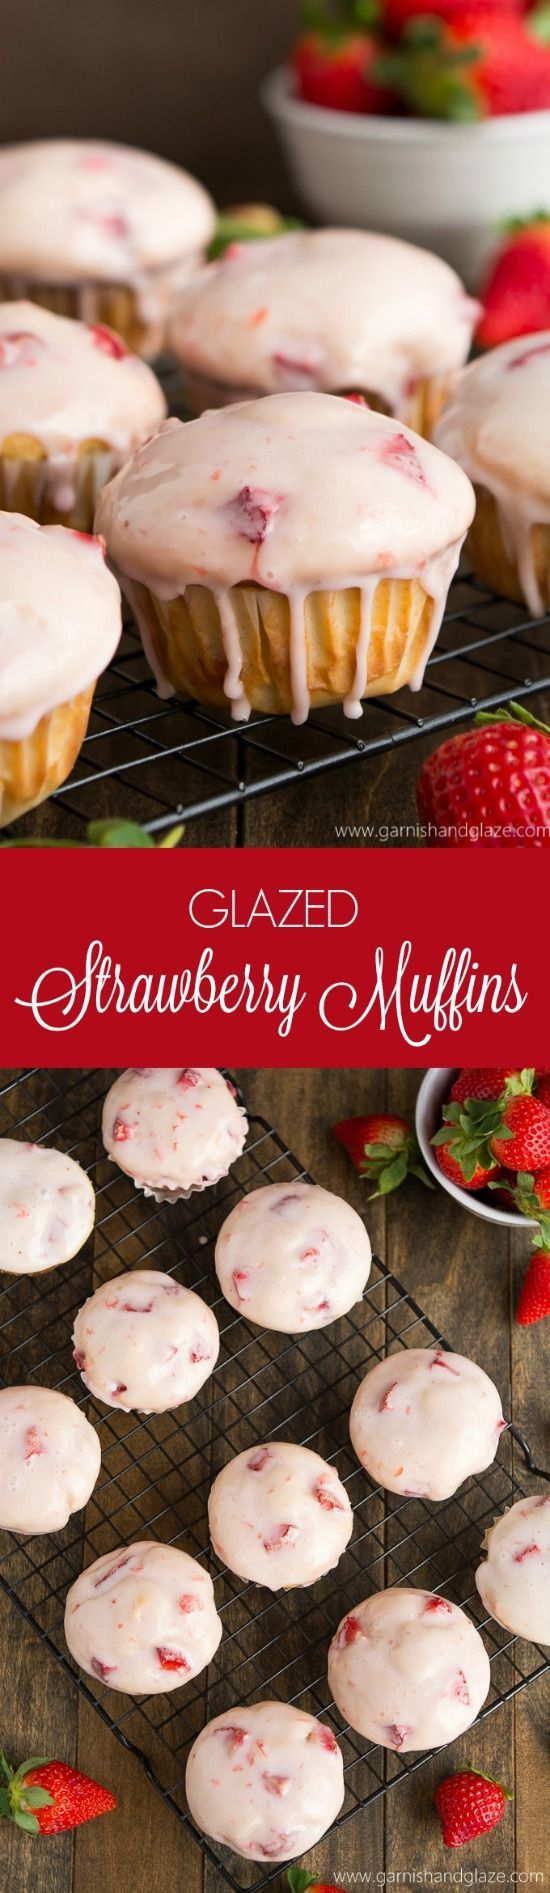 Soft and tender Glazed Strawberry Muffins are the perfect sweet treat to share on Mother's Day.